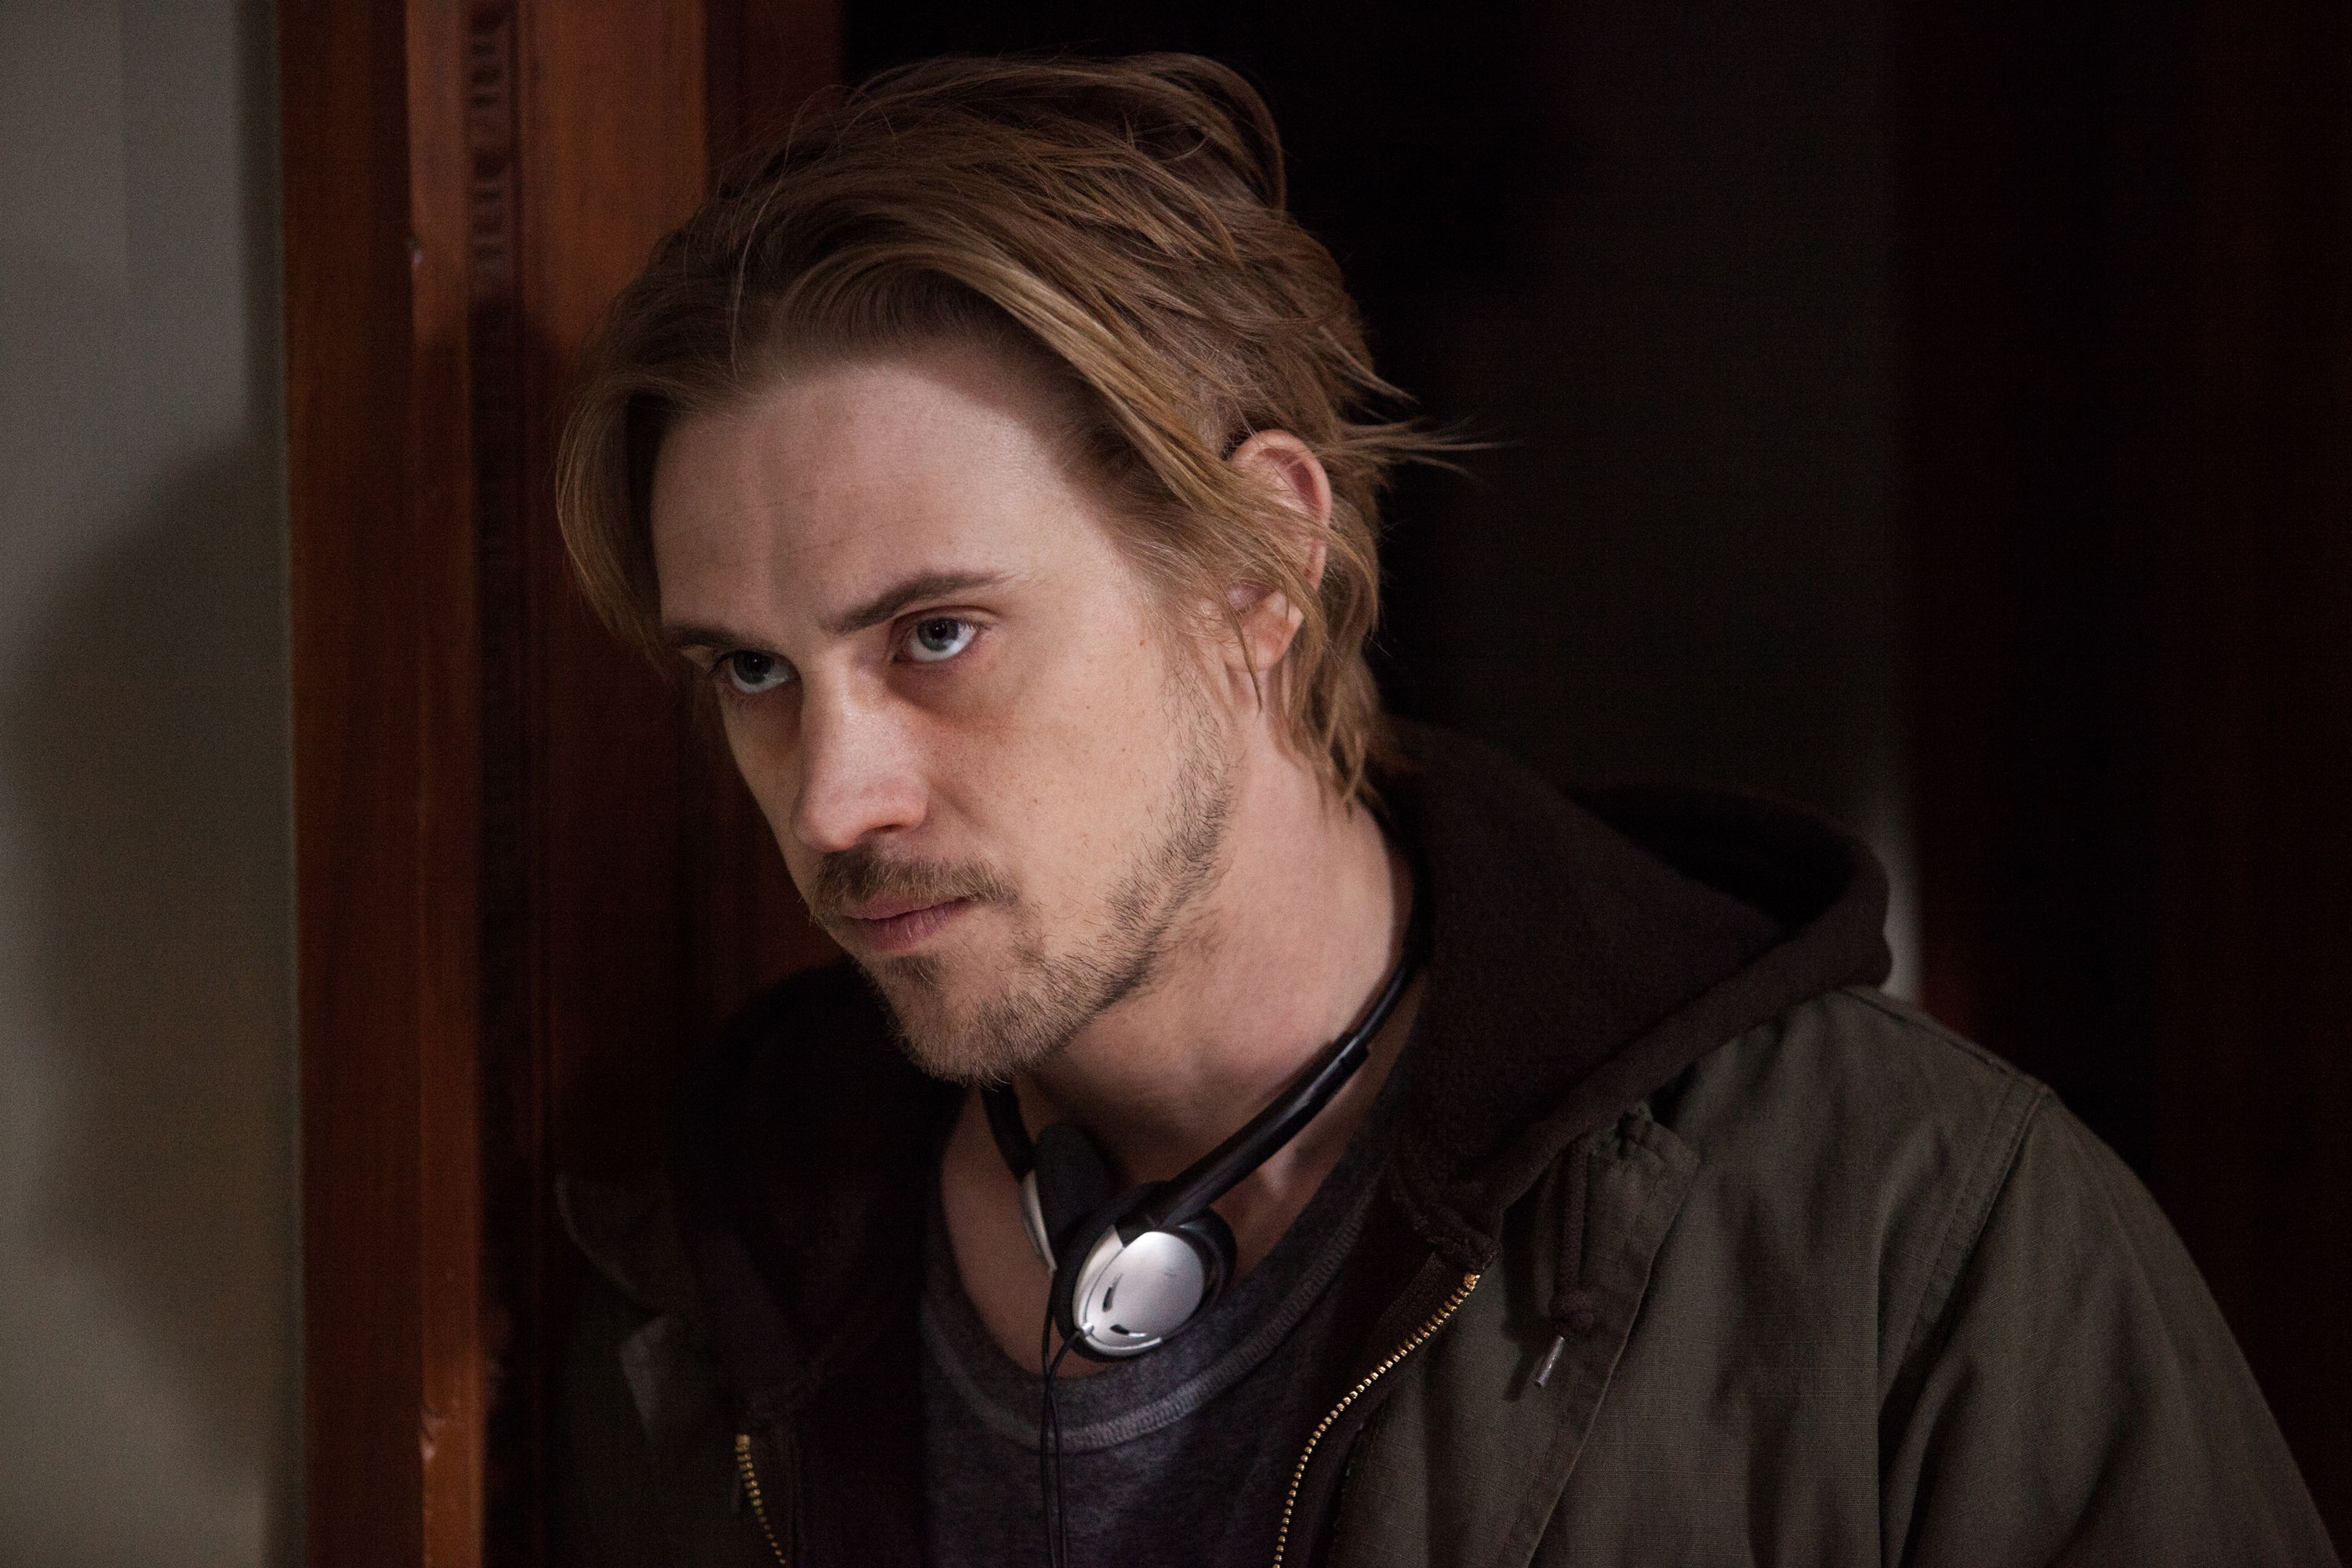 boyd holbrook moviesboyd holbrook logan, boyd holbrook gif, boyd holbrook gone girl, boyd holbrook 2017, boyd holbrook gif hunt, boyd holbrook twitter, boyd holbrook narcos, boyd holbrook donald pierce, boyd holbrook vk, boyd holbrook height, boyd holbrook gif tumblr, boyd holbrook interview, boyd holbrook gif hunt tumblr, boyd holbrook haircut, boyd holbrook dior, boyd holbrook tom felton, boyd holbrook movies, boyd holbrook gallery, boyd holbrook skeleton twins, boyd holbrook barefoot